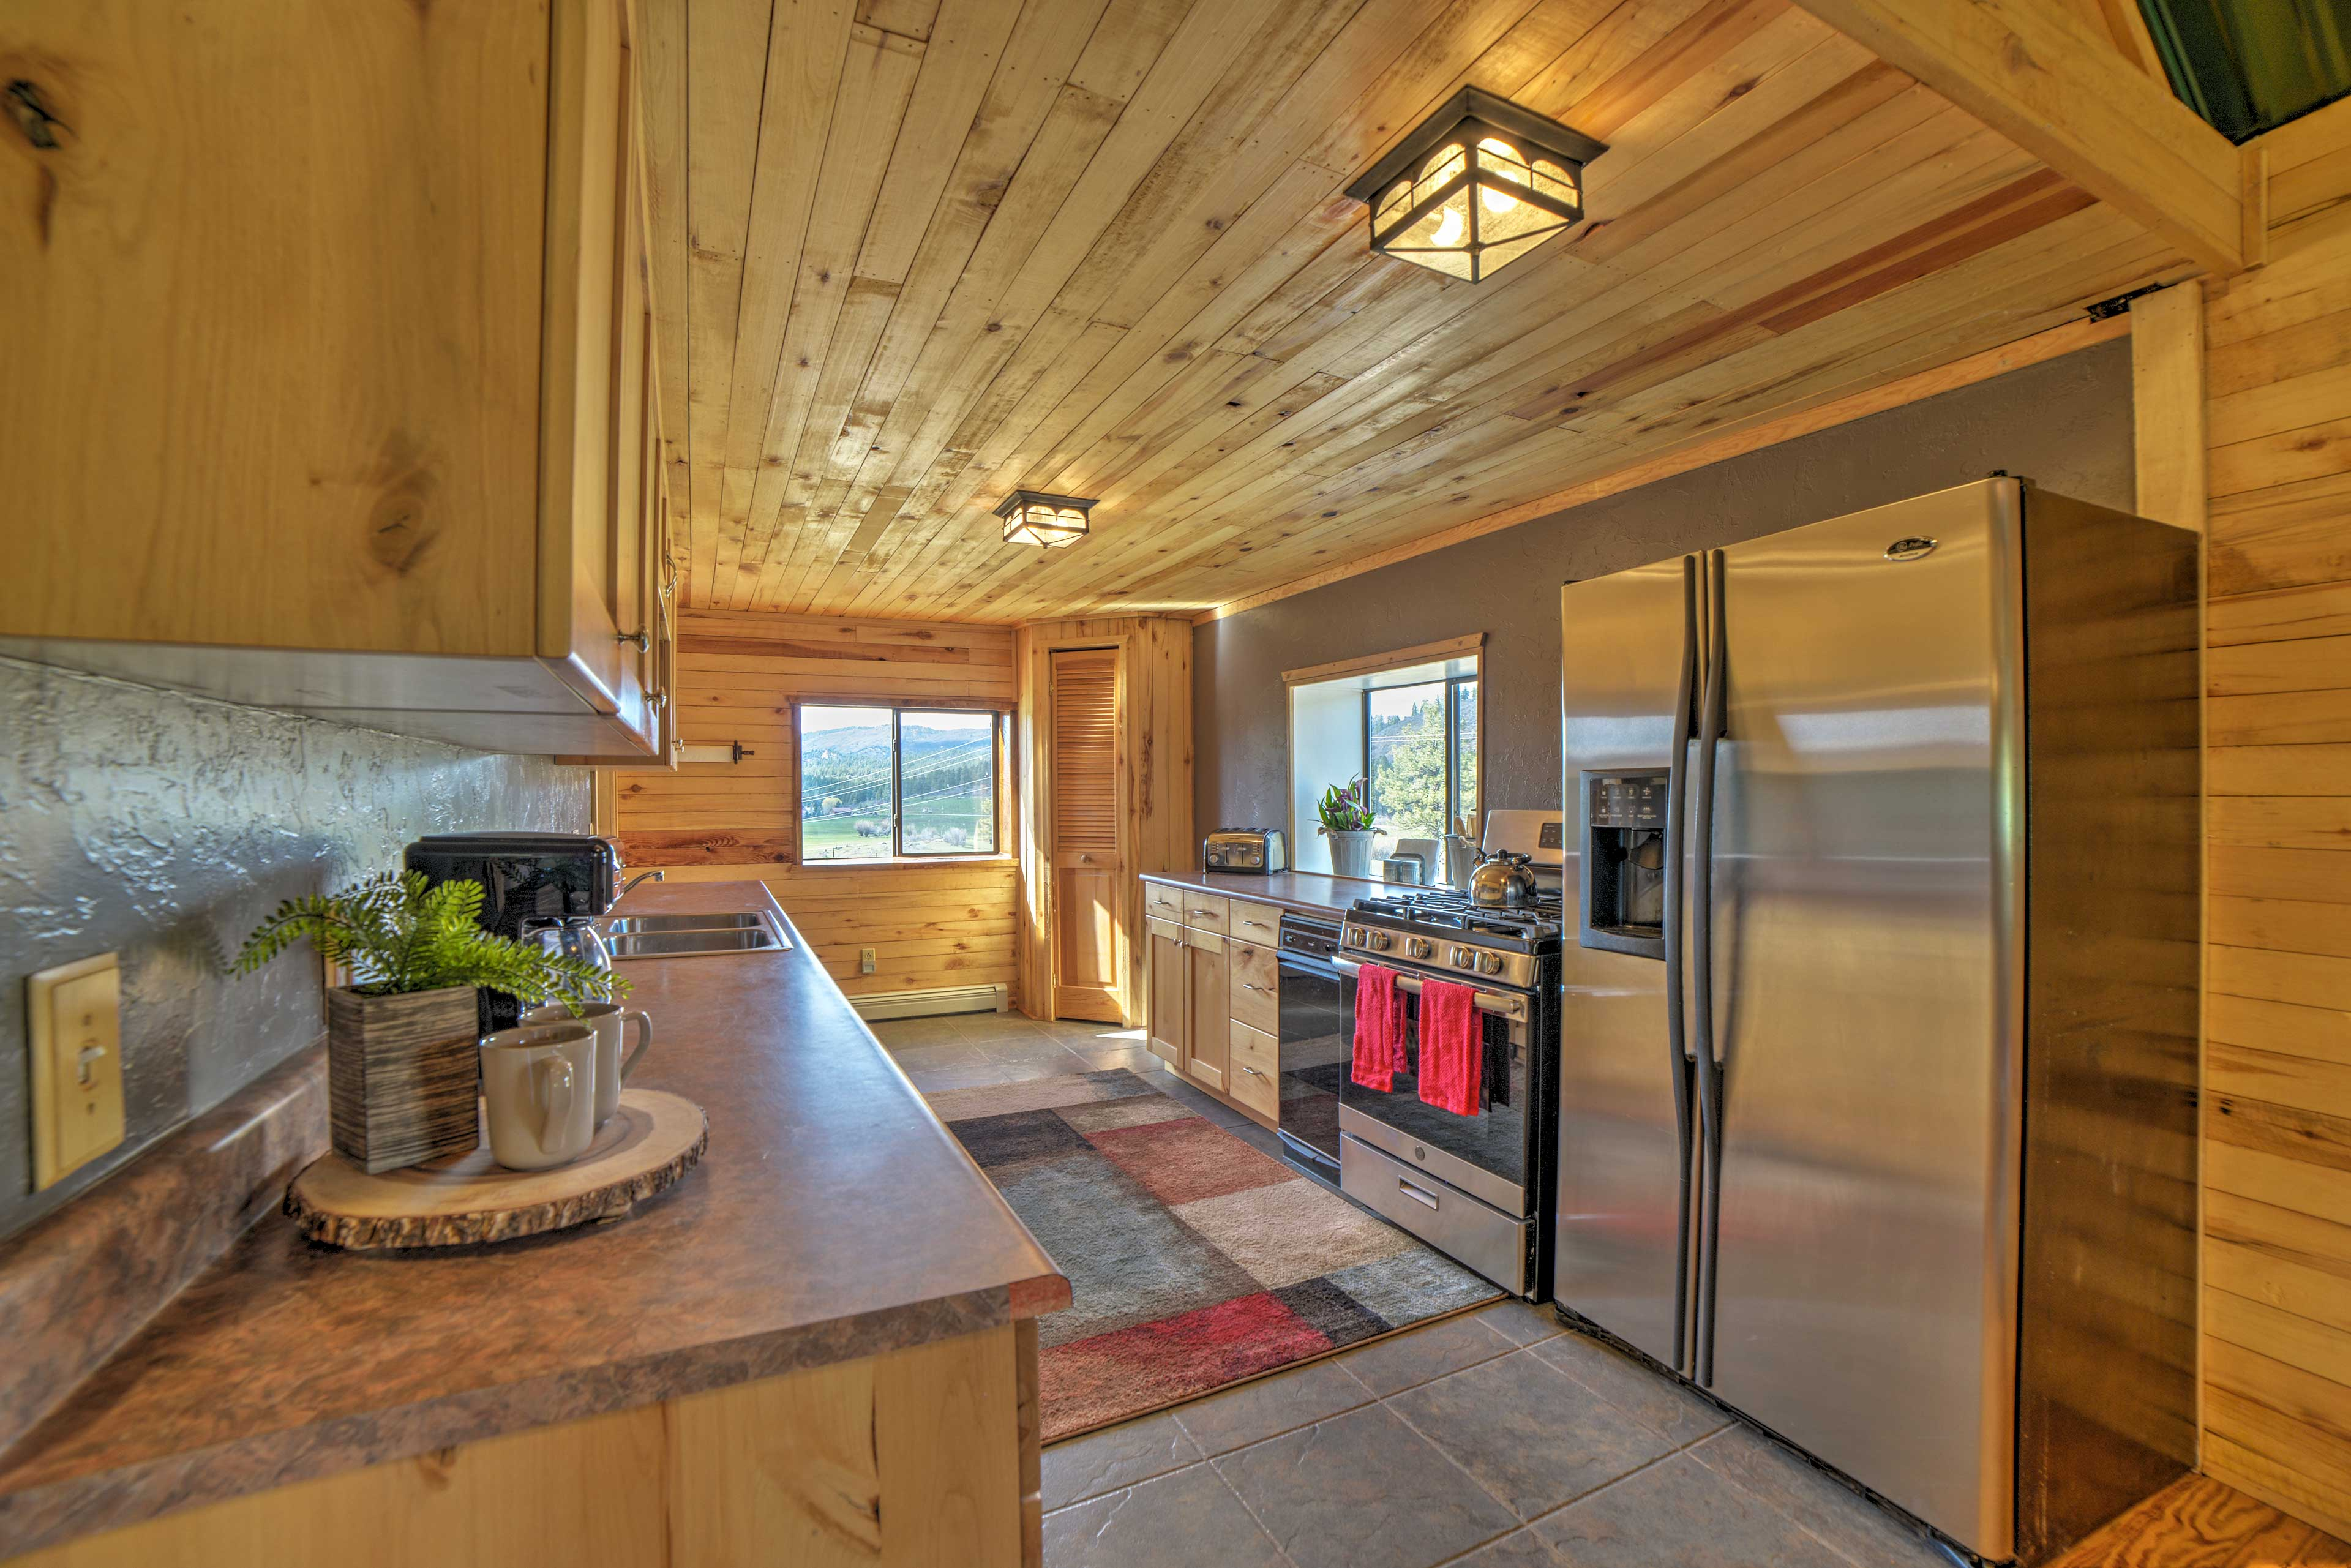 Fully Equipped Kitchen | Stainless Steel Appliances | Drip Coffee Maker